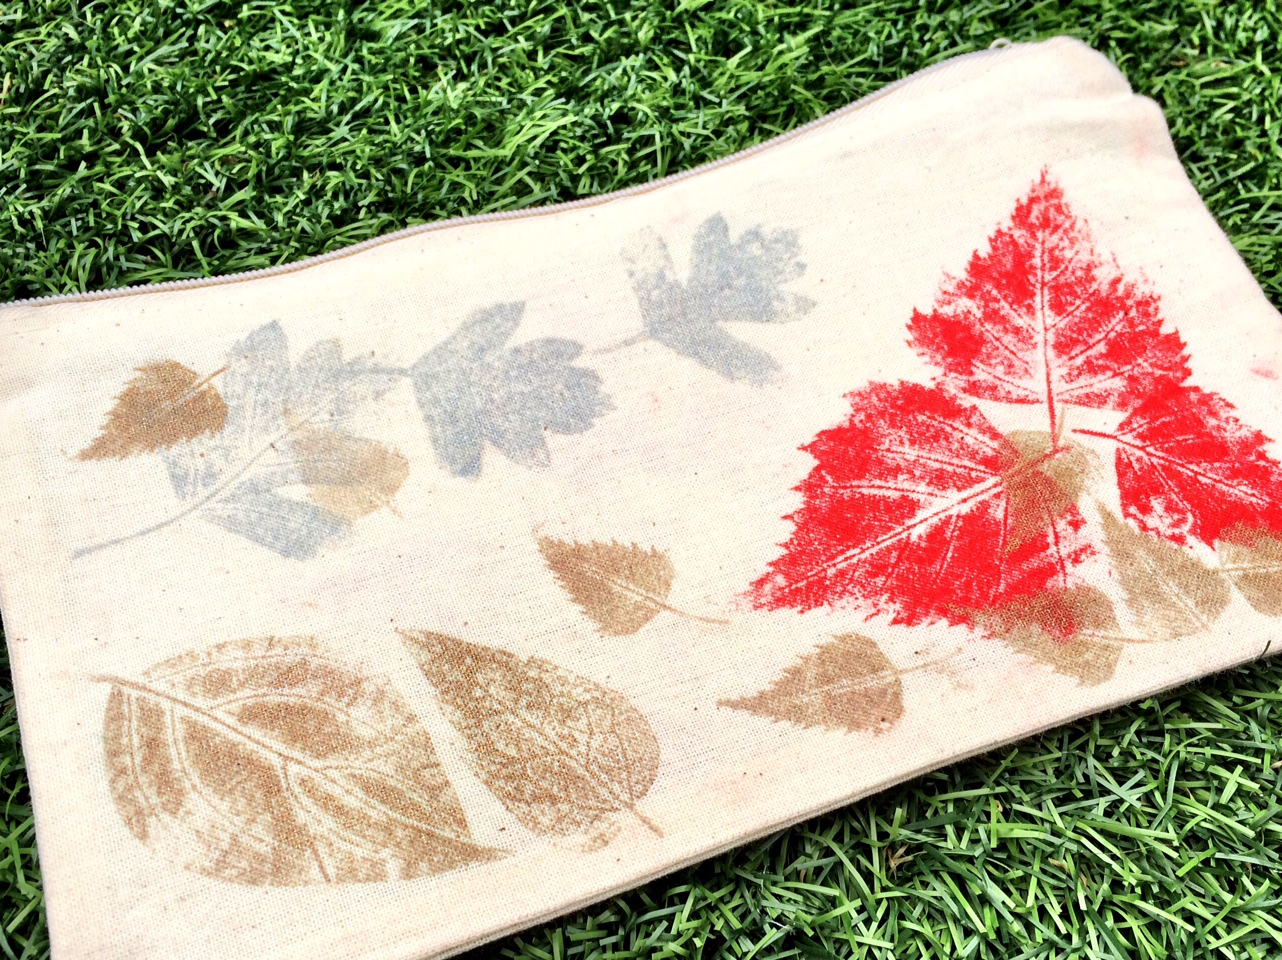 Fabric leaf printing at Foundry Wood